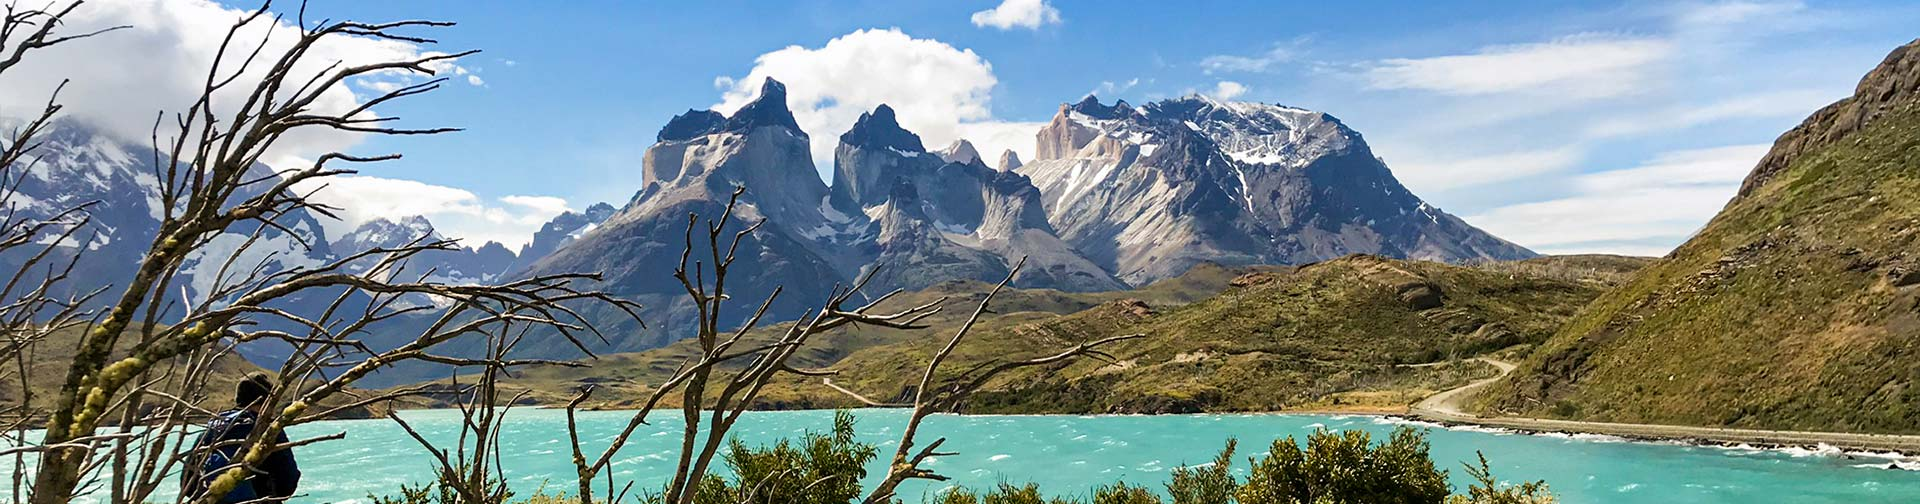 Chile-Reisen – aktiv unterwegs